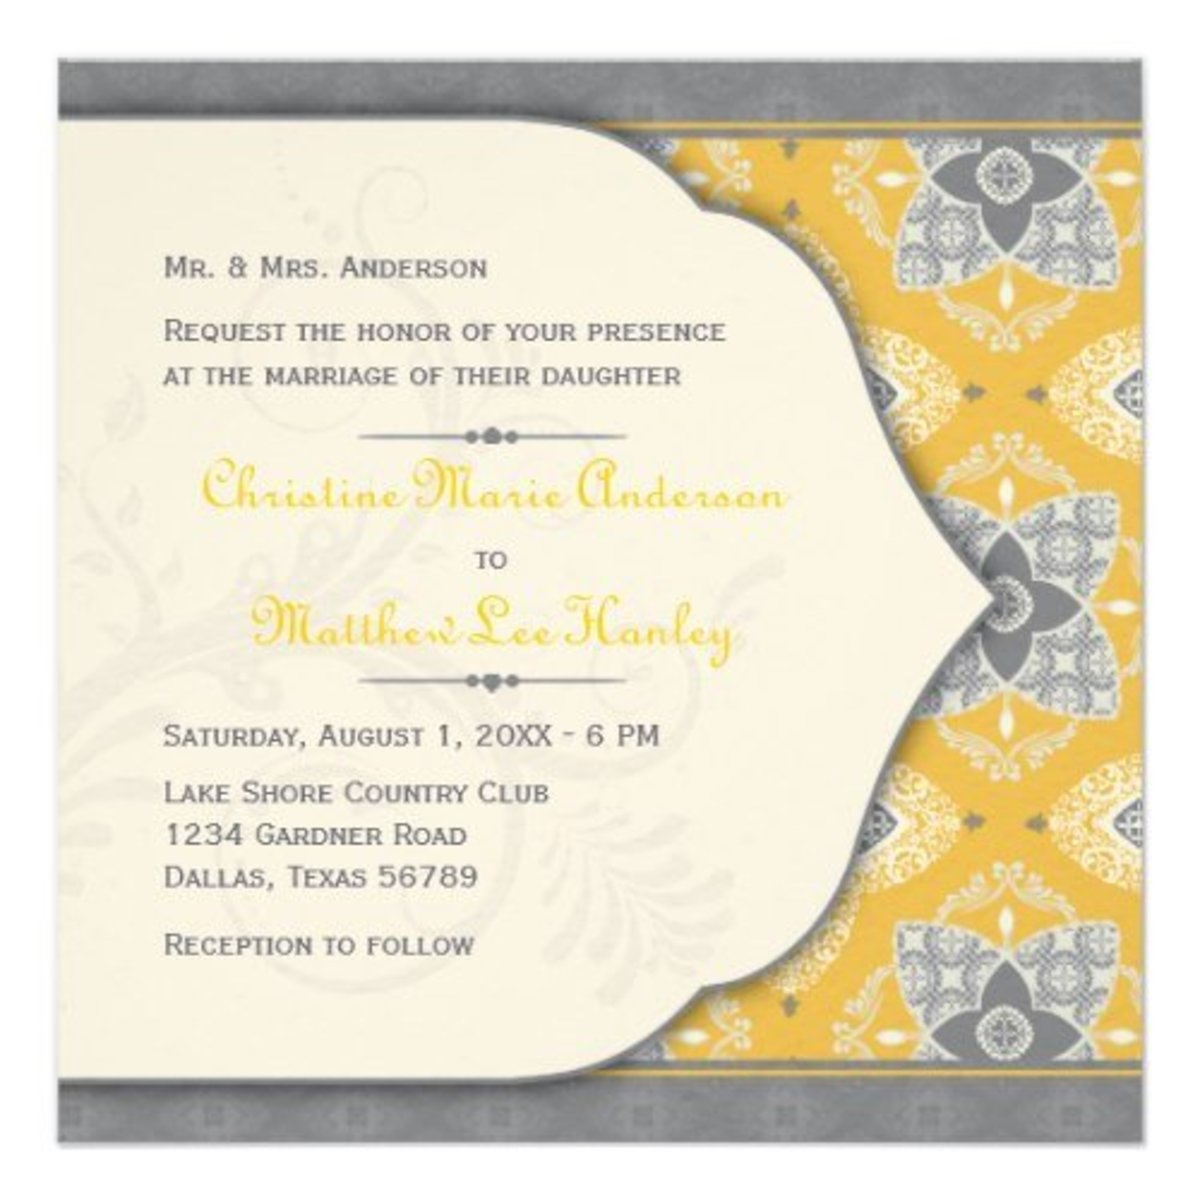 Moroccan Wedding Invitation sets the mood for the exotic reception to come